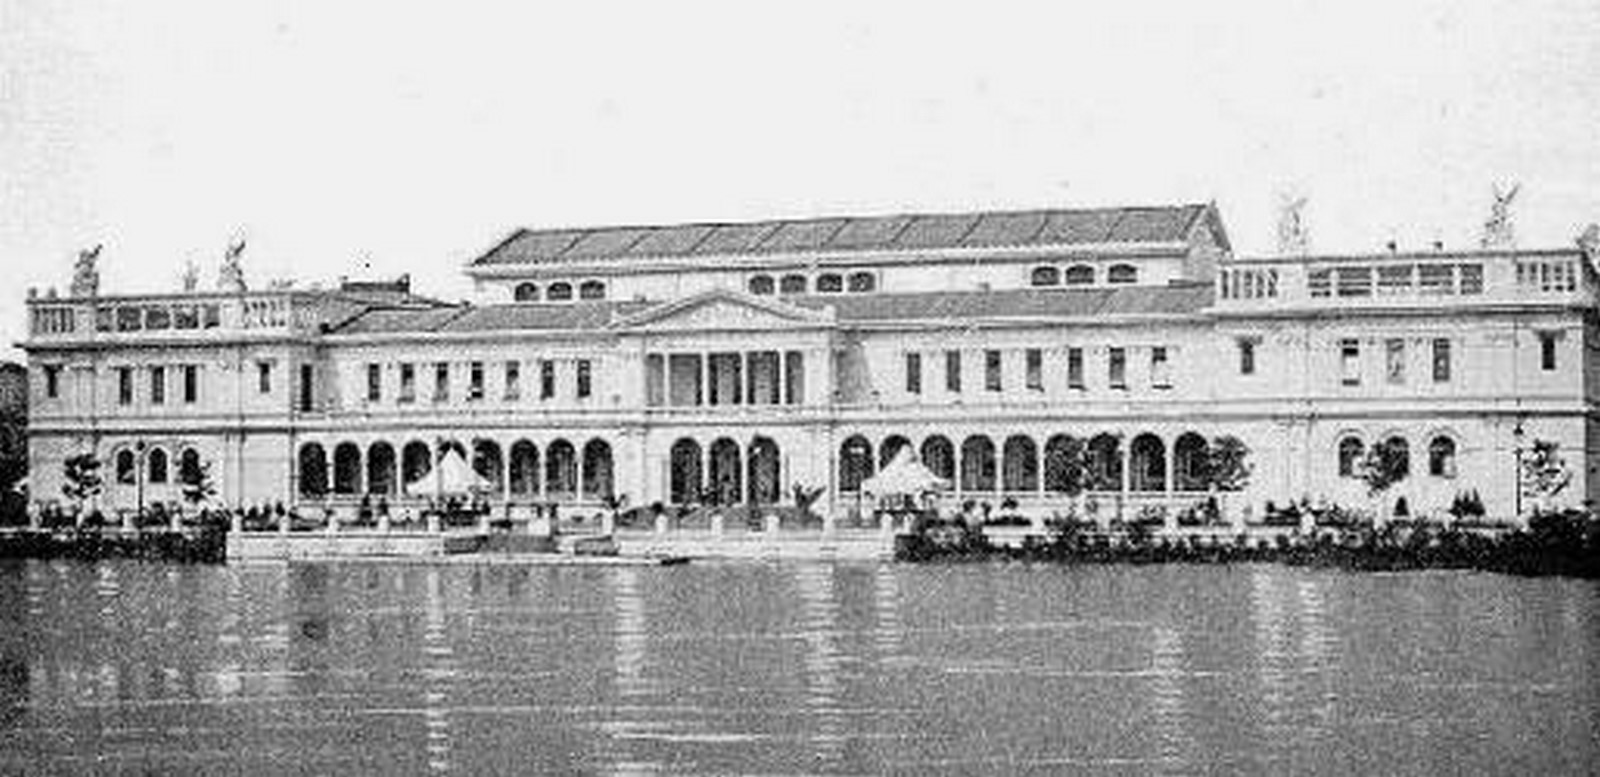 WOMAN'S BUILDING, WORLD'S COLUMBIAN EXPOSITION, CHICAGO